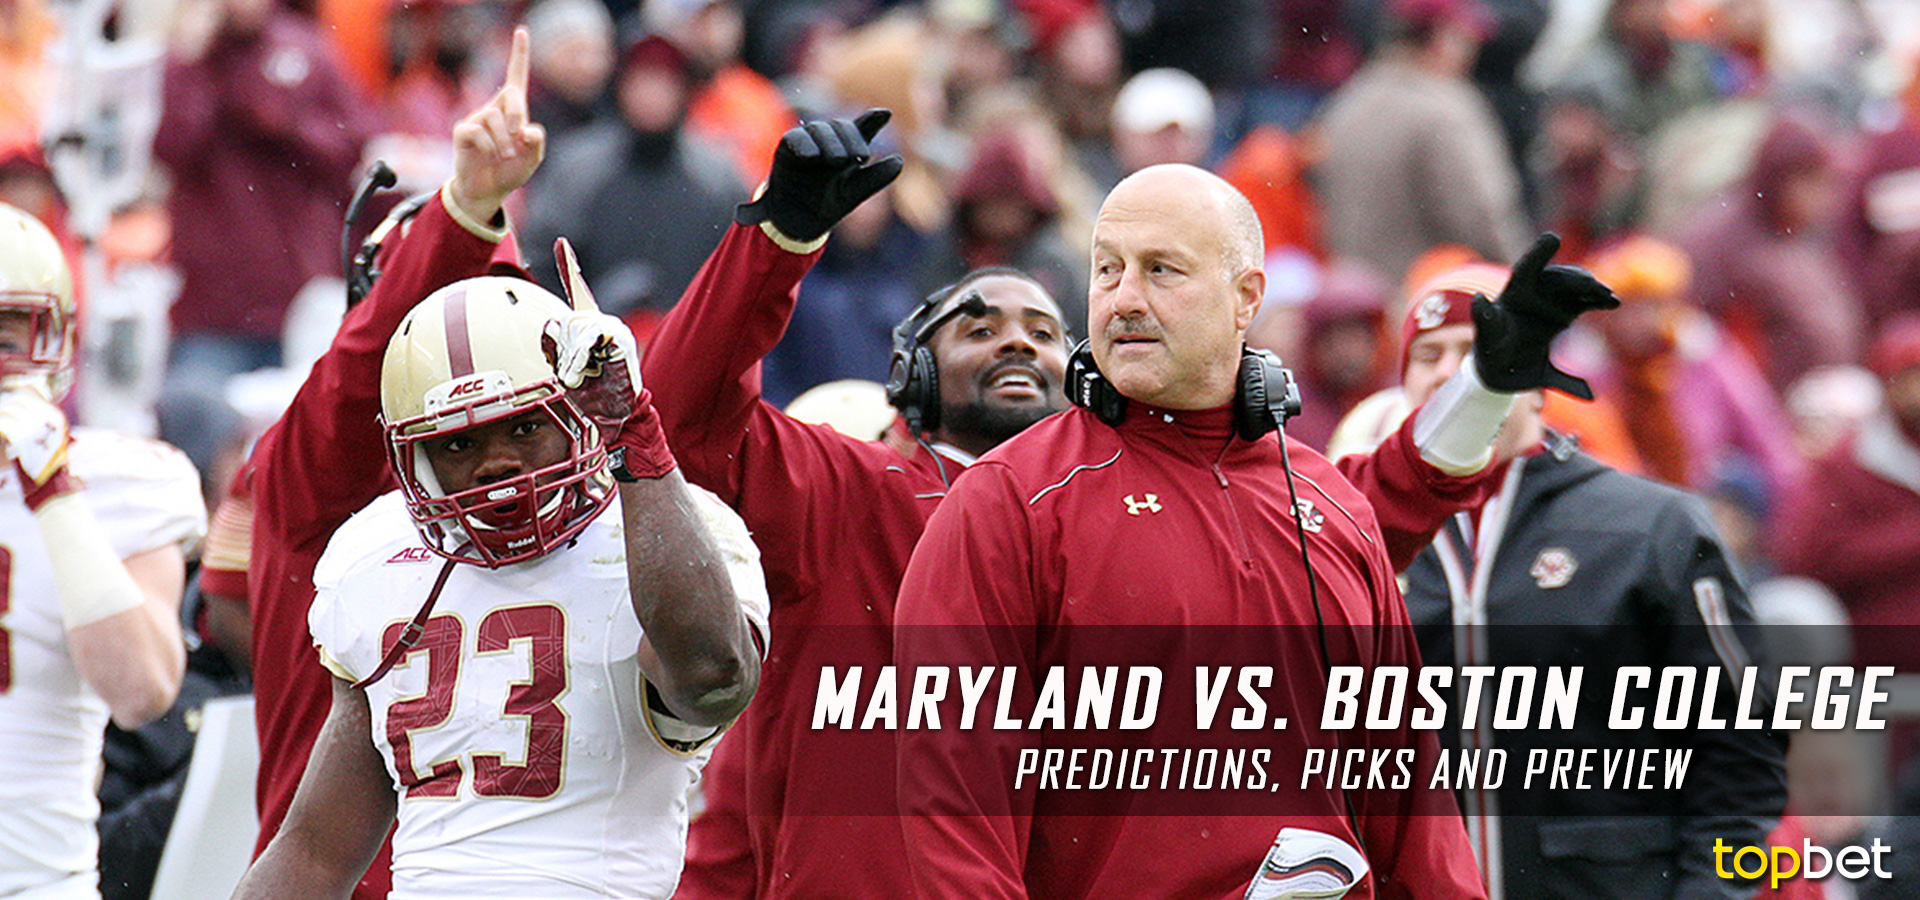 ncaa predictions today bowl games betting odds